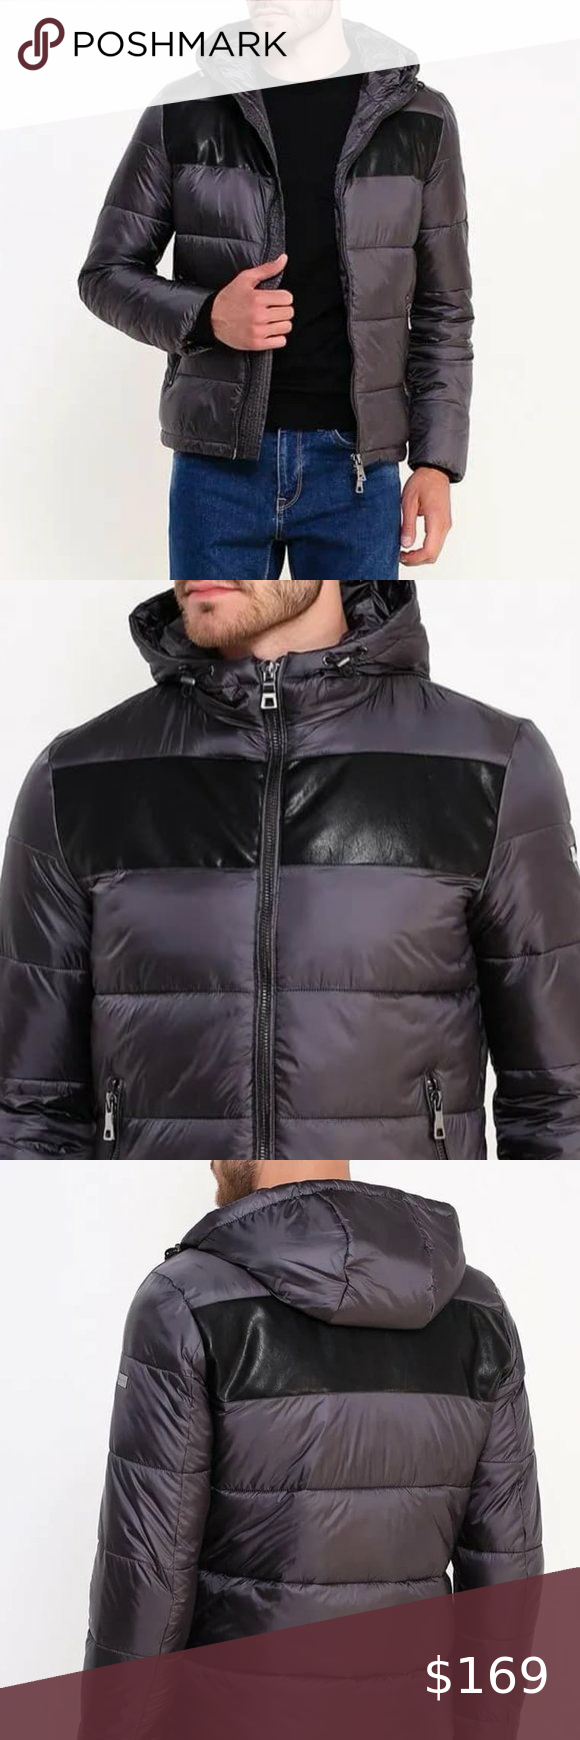 New Guess By Marciano Blk Insulated Puffer Jacket Guess By Marciano Jacket Brands Faux Leather Jackets [ 1740 x 580 Pixel ]